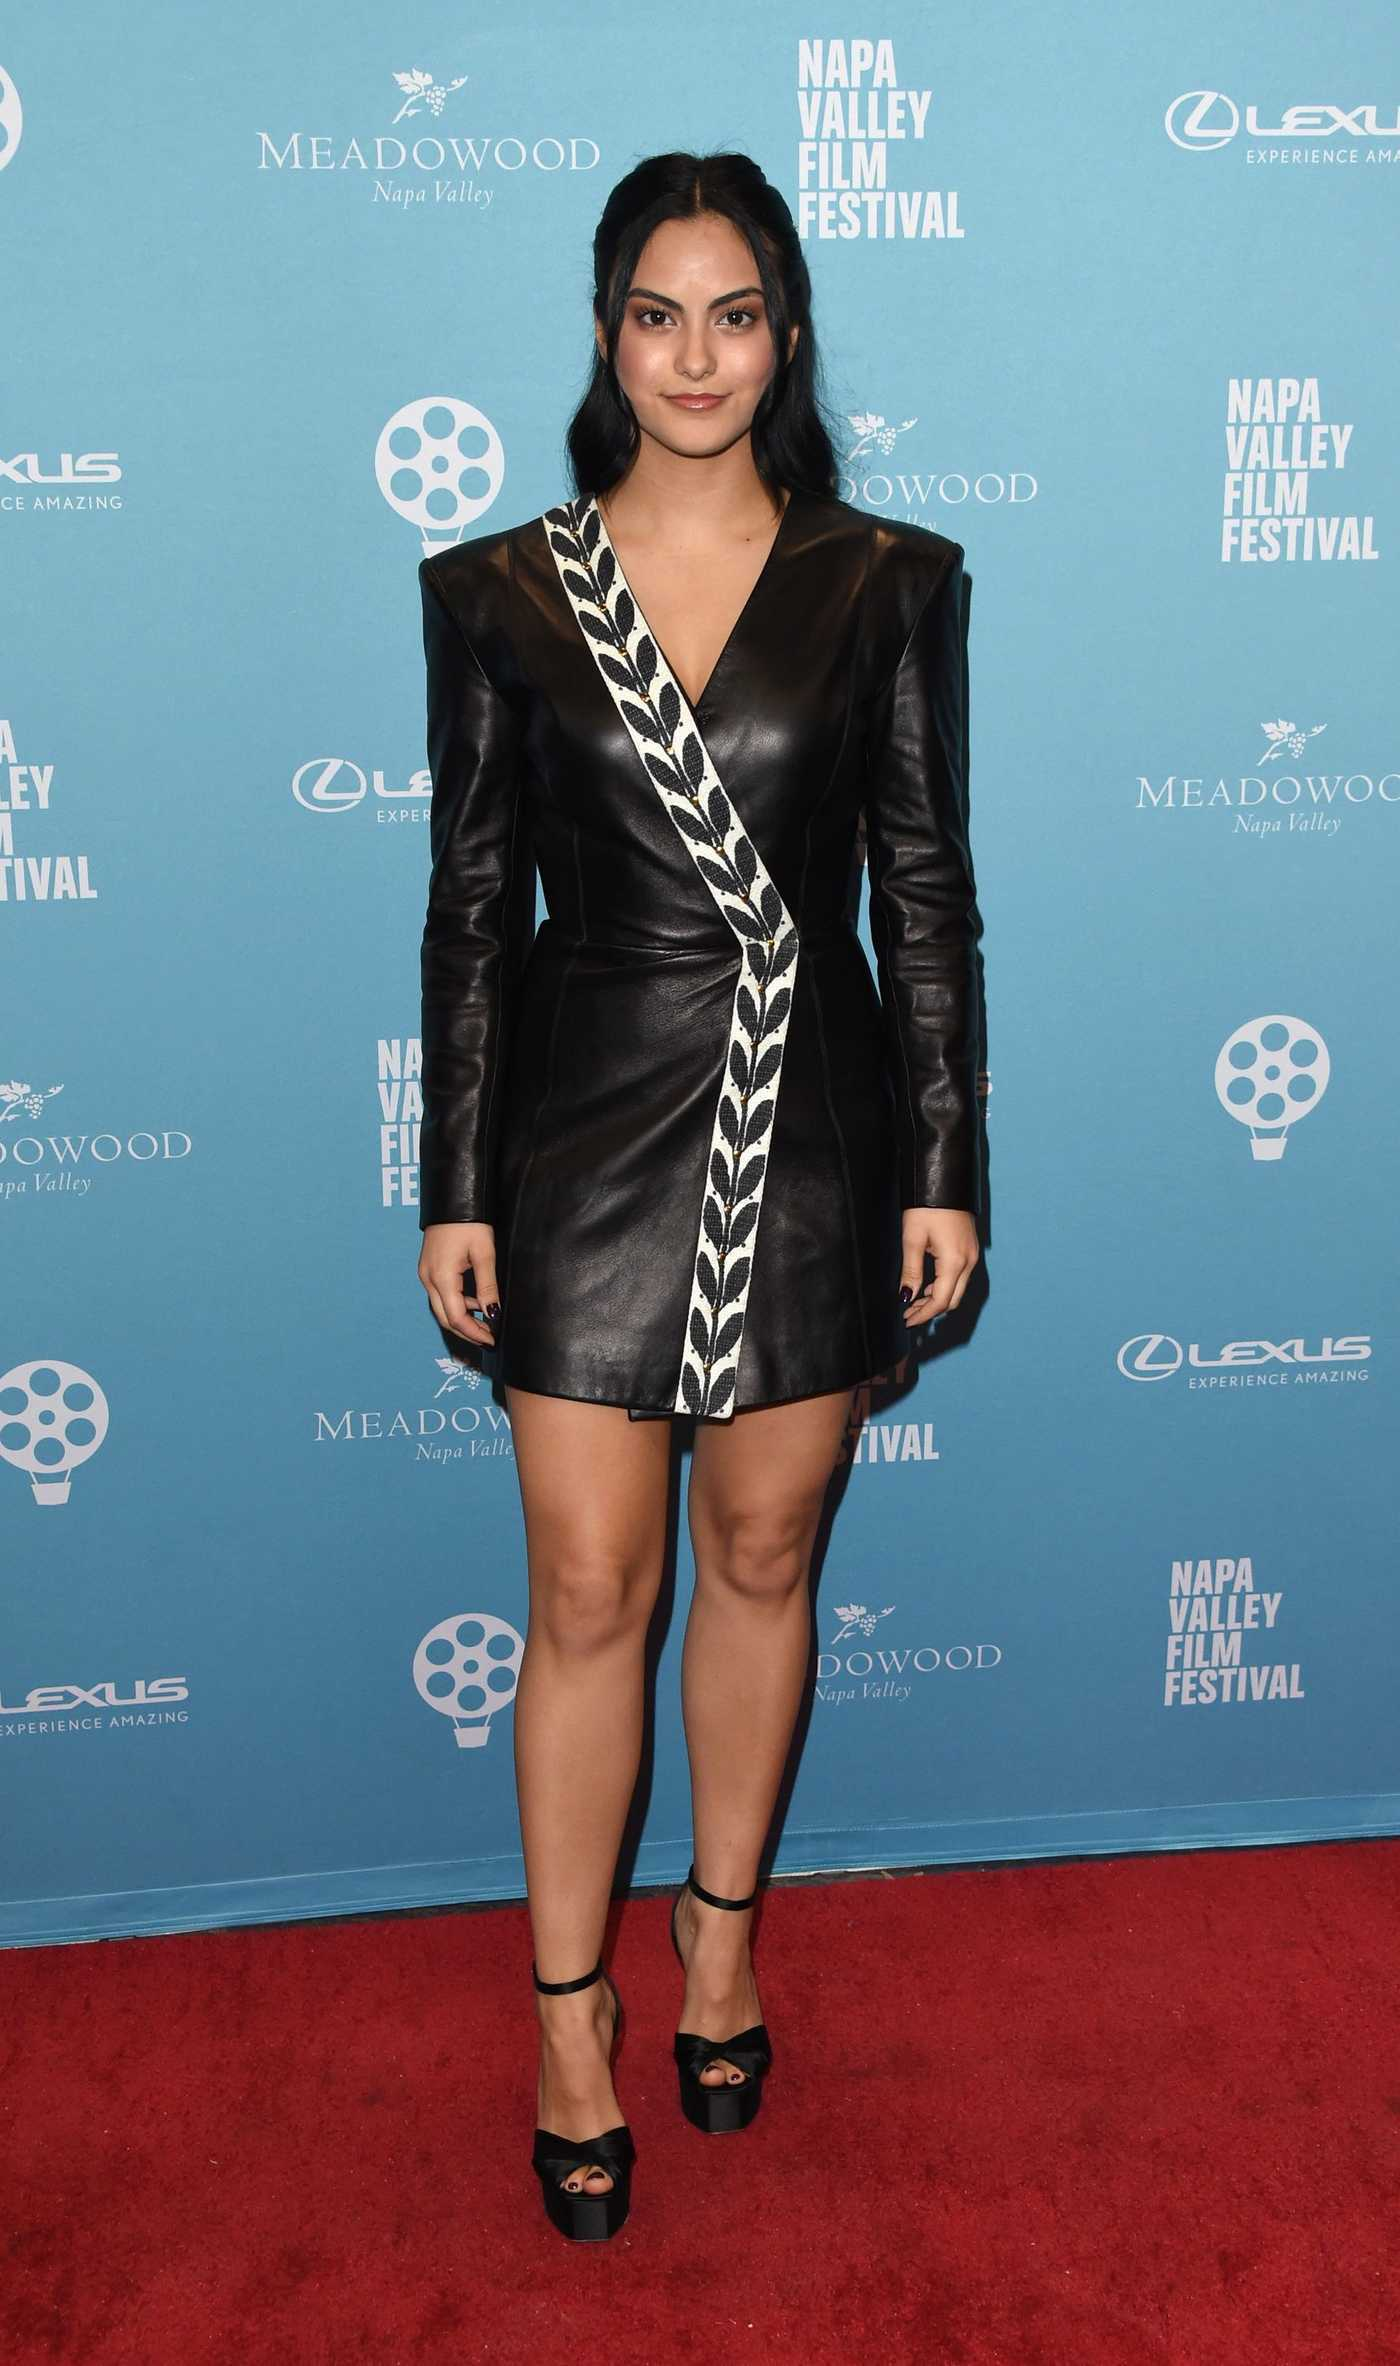 Camila Mendes Attends Celebrity Tributes During 2018 Napa Valley Film Festival in Napa 11/08/2018